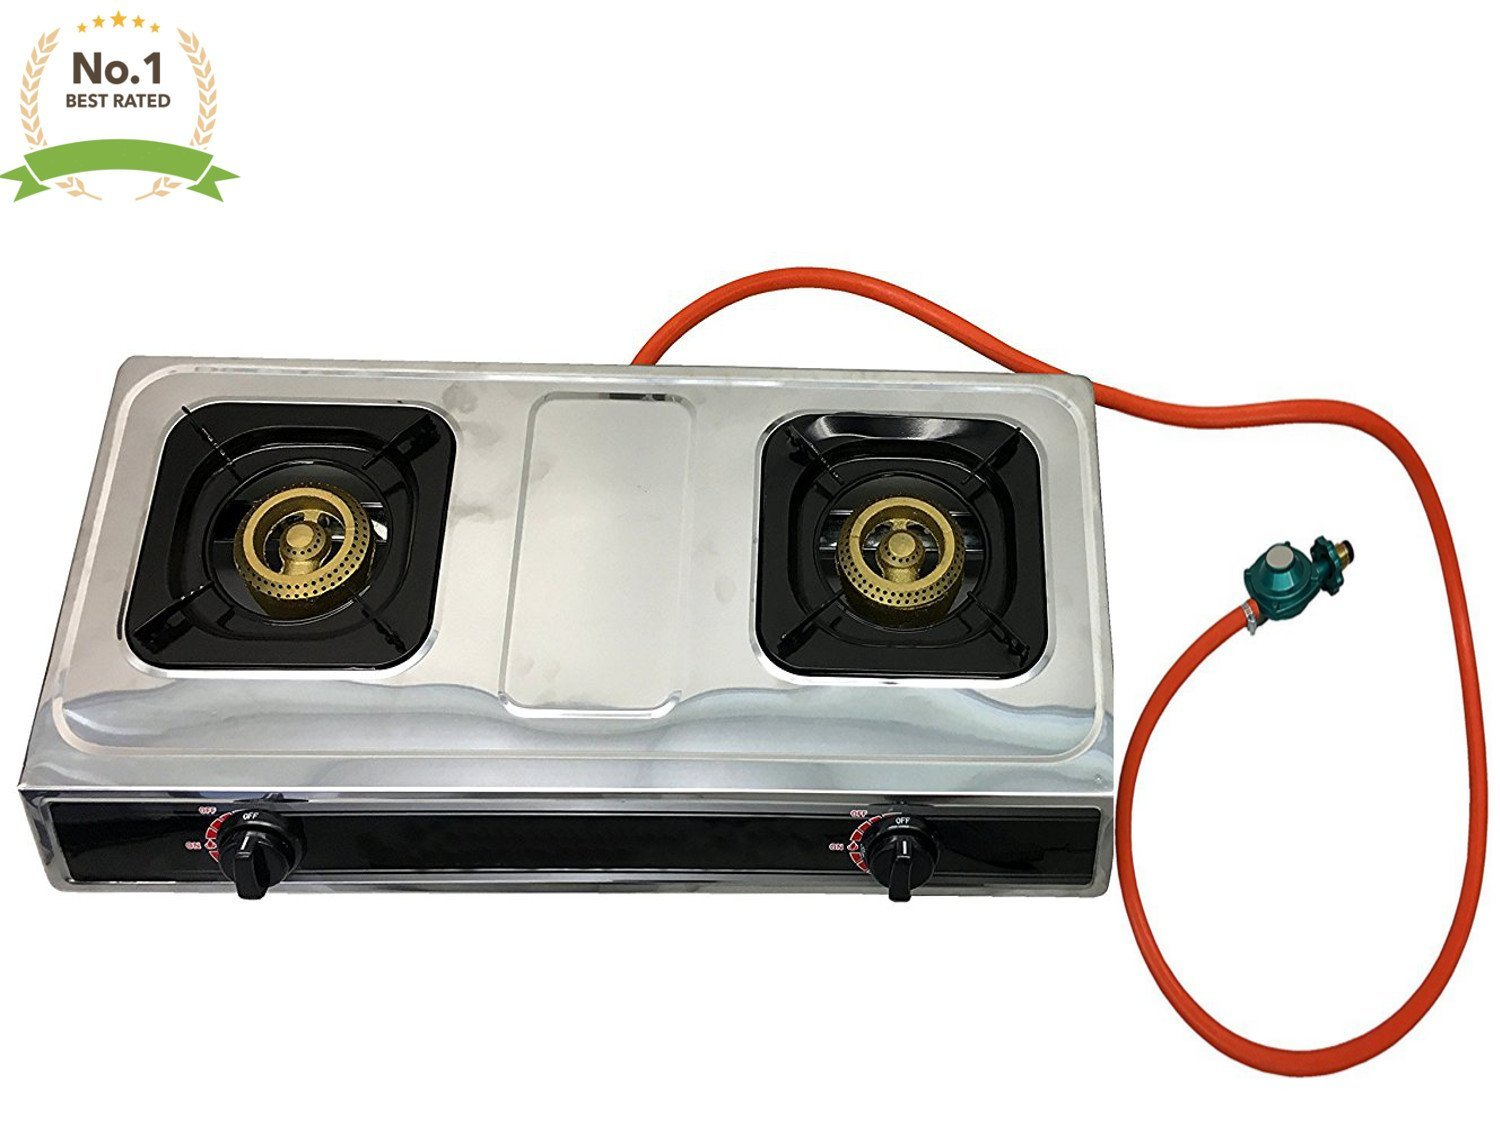 #1 Double Burner Stove Gas Propane Stove Cooktop Commercial Outdoor  Whirlwind Burner Camp